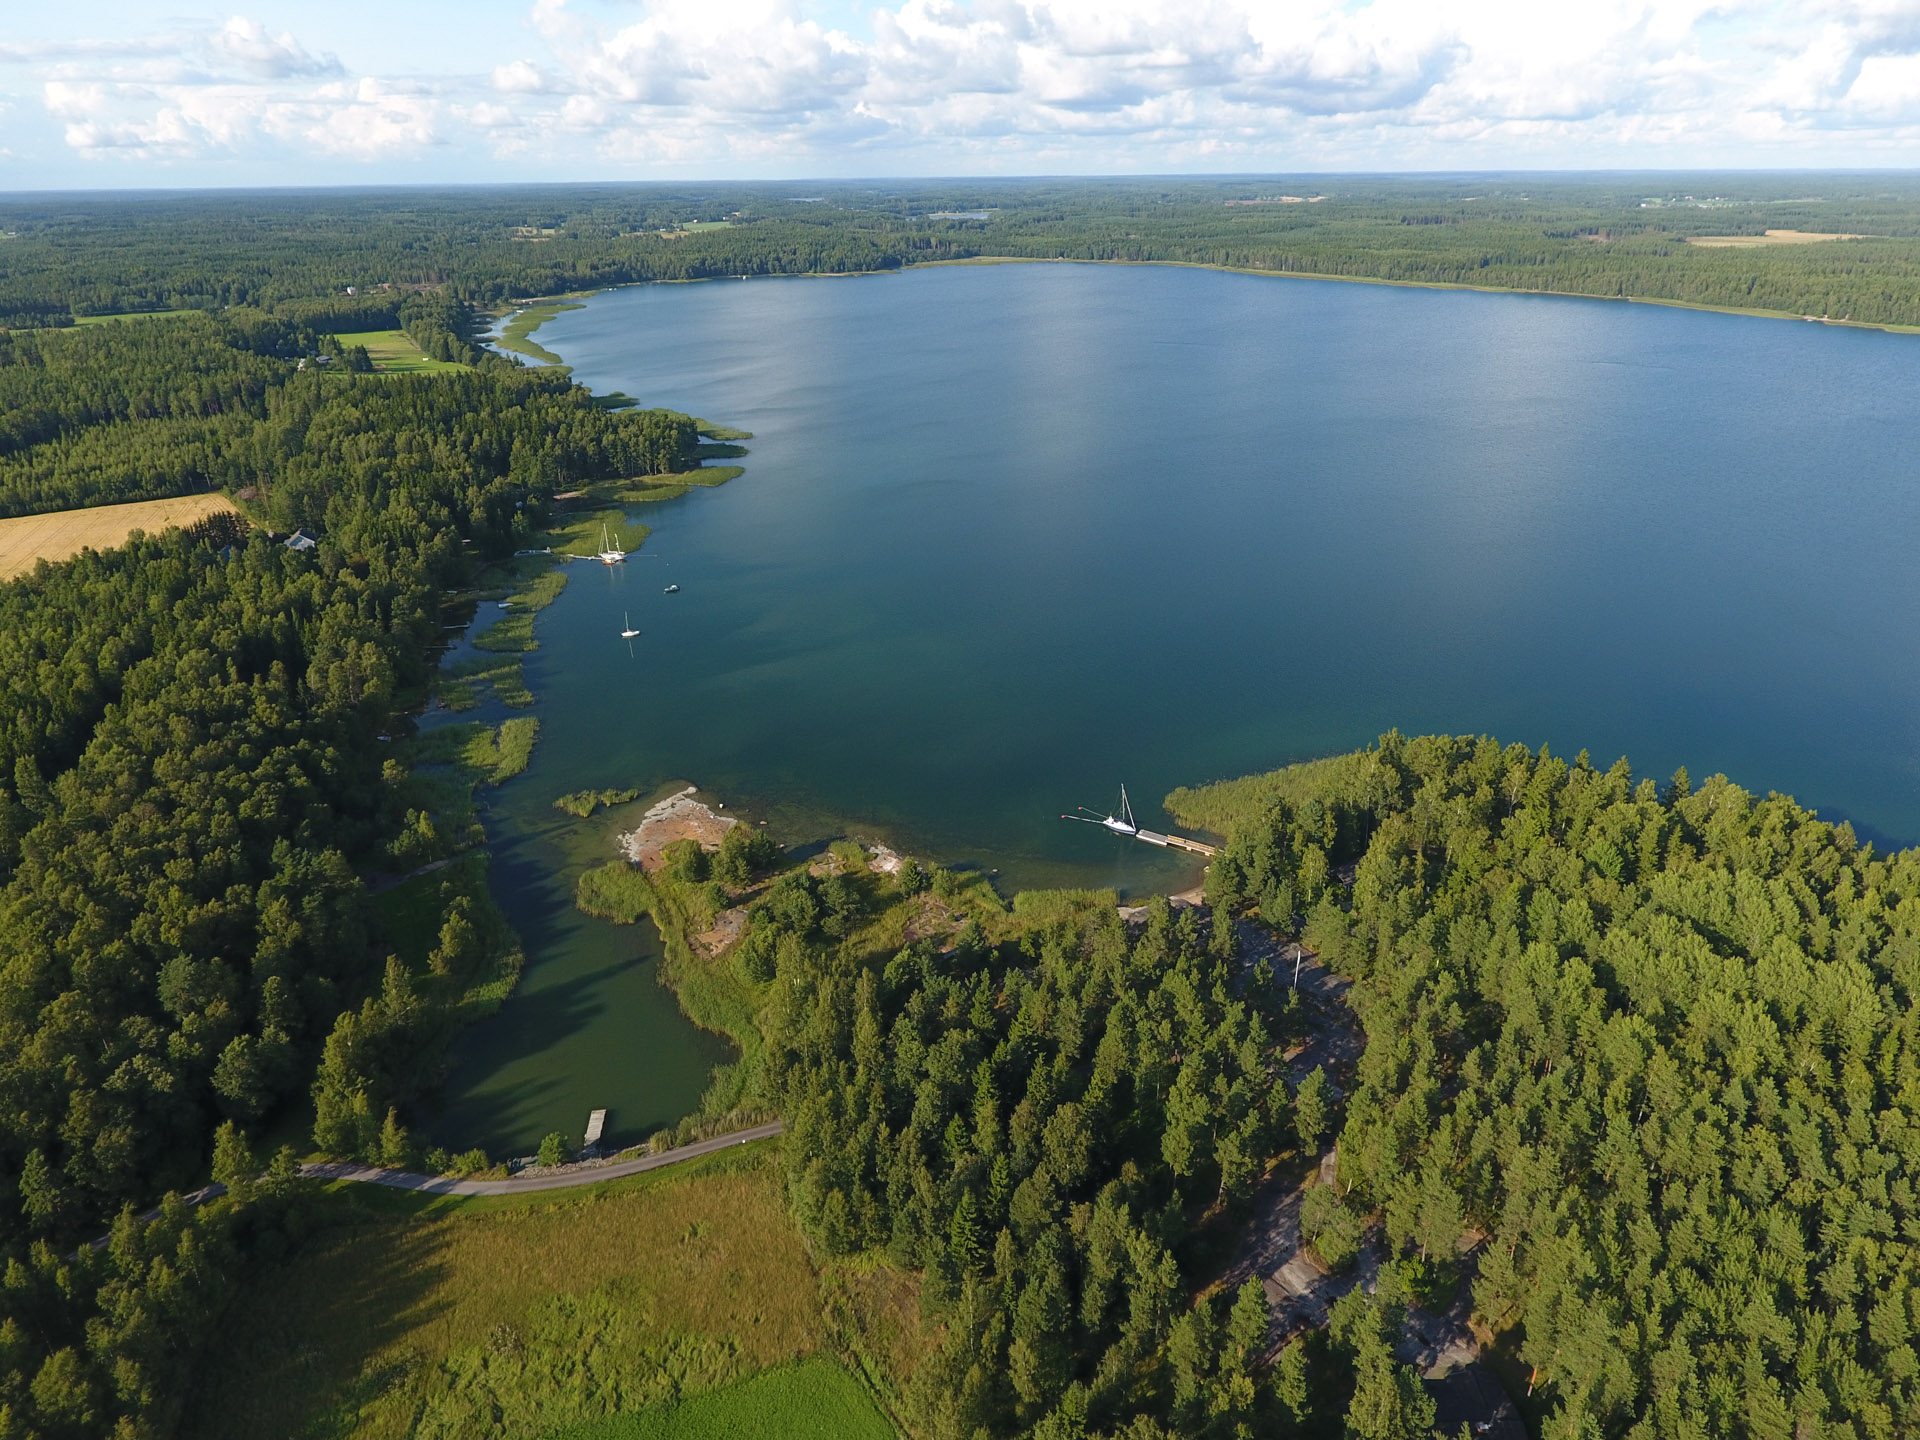 Ilmakuva. From the air.